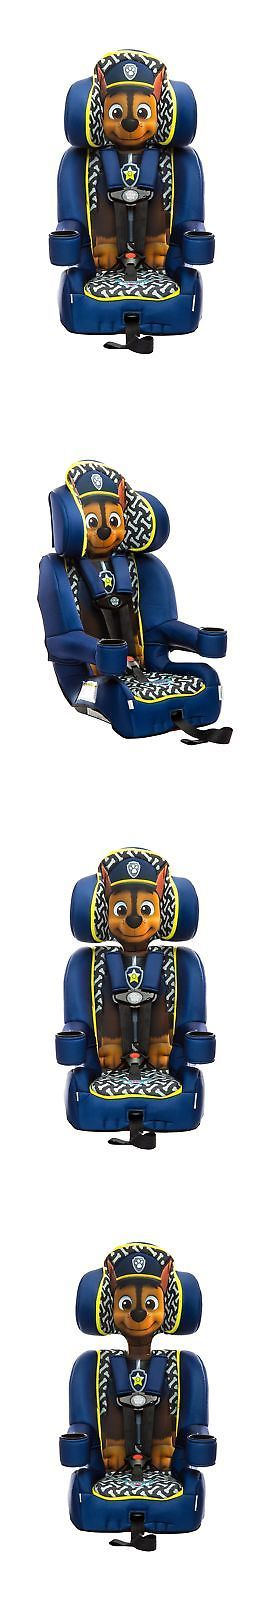 Booster to 80lbs 66694: Kidsembrace Nickelodeon Paw Patrol Chase Combination Harness Booster Car Seat -> BUY IT NOW ONLY: $181.89 on eBay!